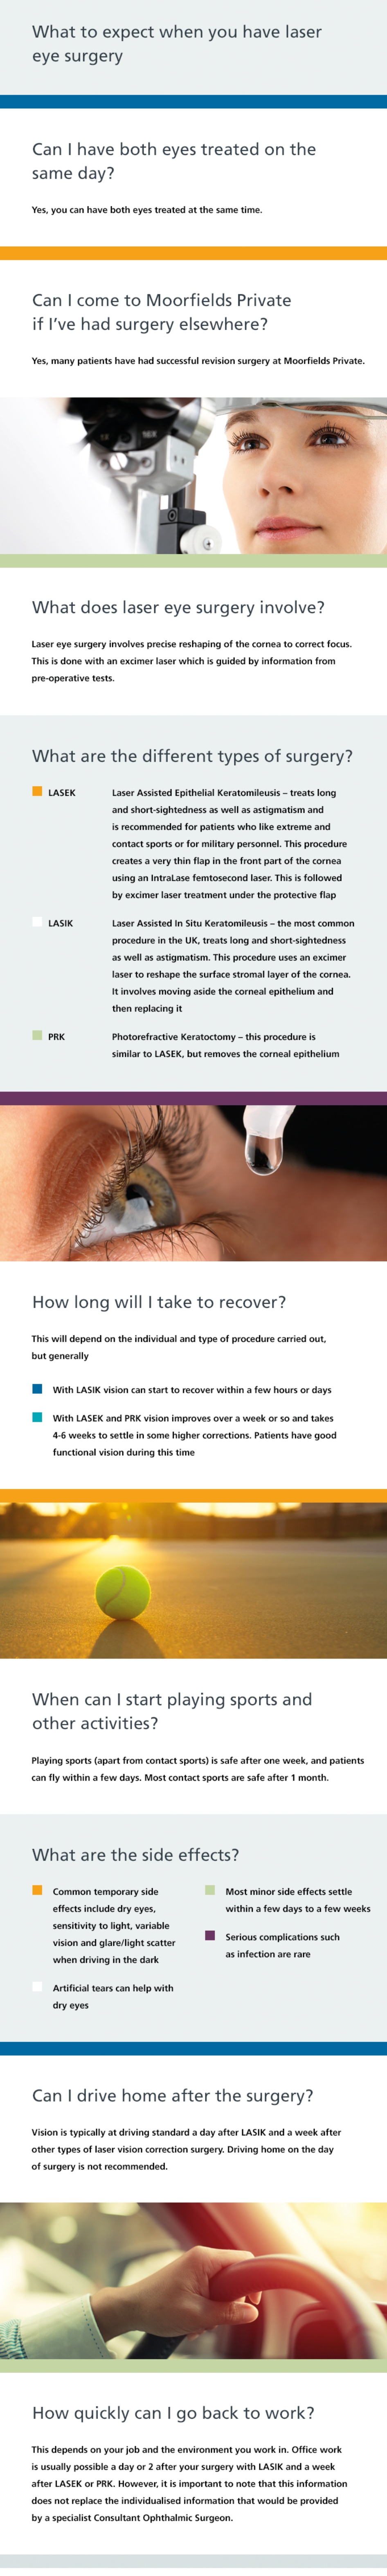 33509What to expect when you have laser eye surgery v6.jpeg